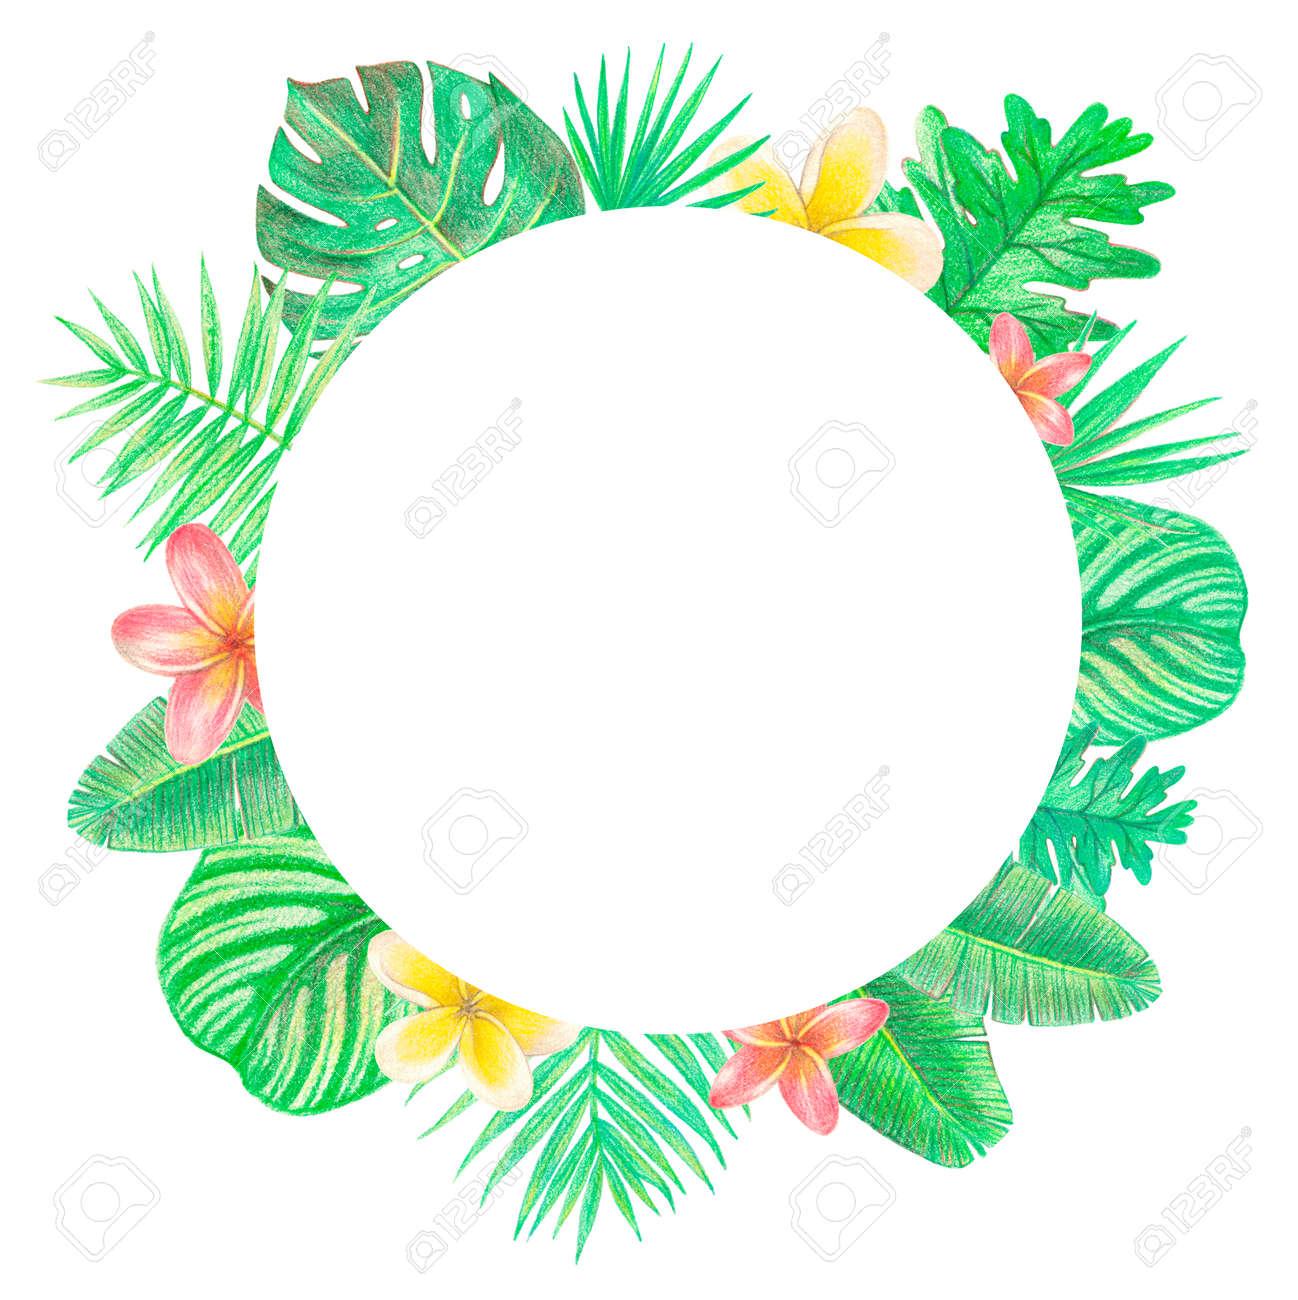 Tropical Exotic Leaves And Flowers Circle Frame Palm Leaves Stock Photo Picture And Royalty Free Image Image 103444220 Search and find more on vippng. tropical exotic leaves and flowers circle frame palm leaves